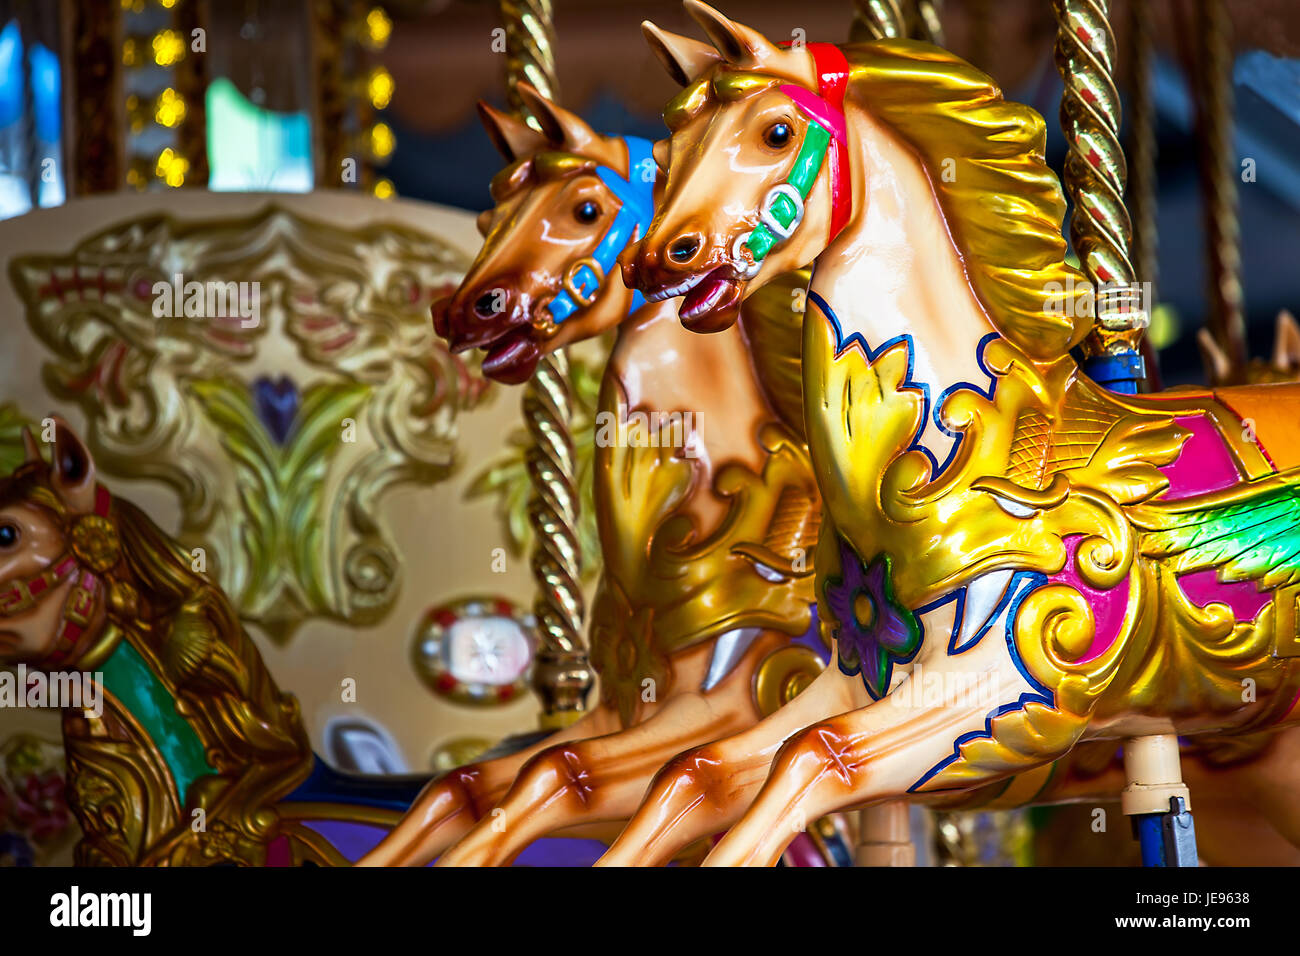 At an amusement park in Sydney New South Wales Australia - Stock Image